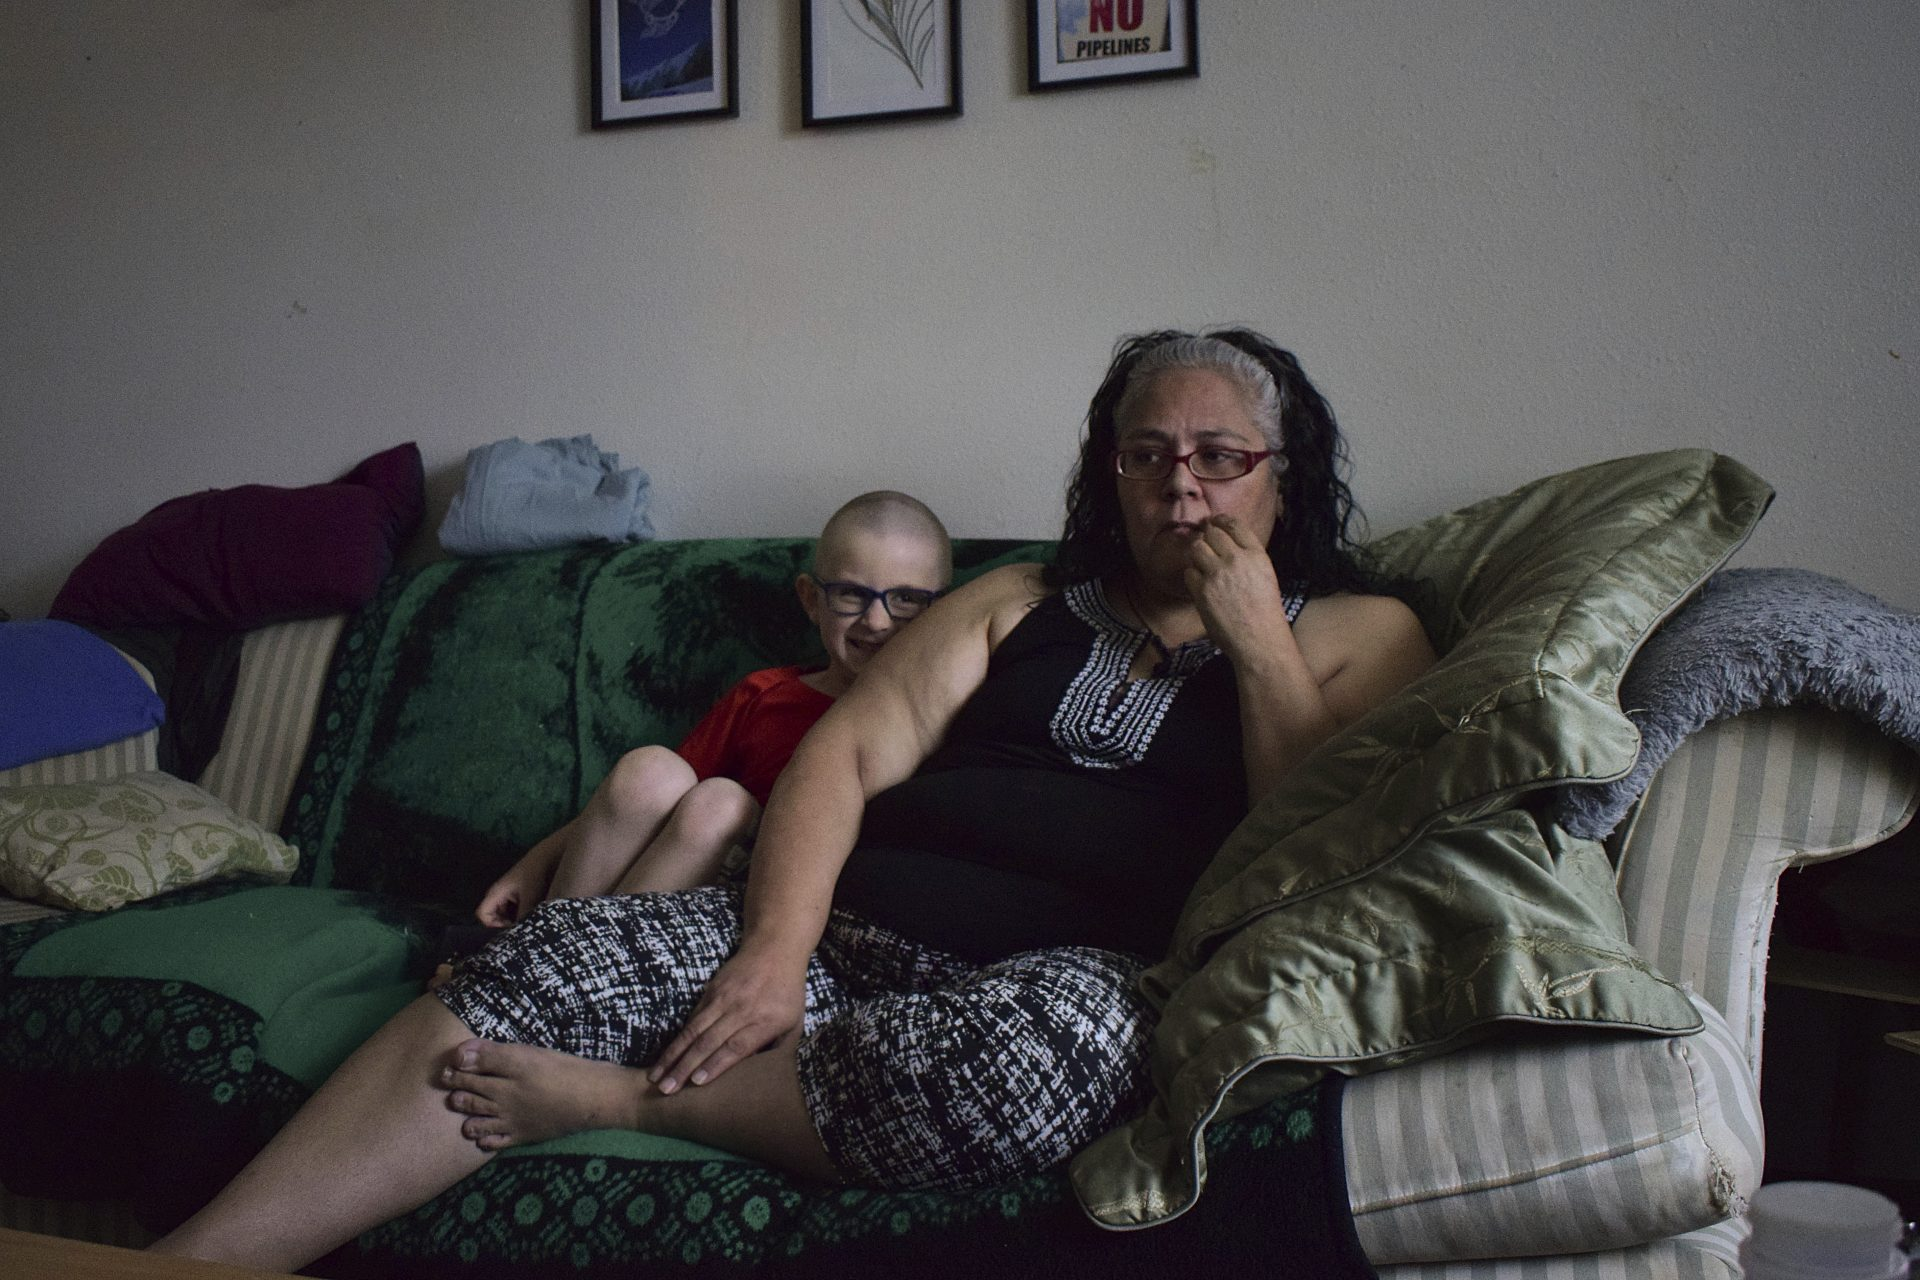 Leona Peterson and her son, Wayne, 6, sit in their home in Prince Rupert, British Columbia, Canada. When Peterson moved into the subsidized Indigenous housing complex with her family, a neighbor warned her about the poor quality of the drinking water.